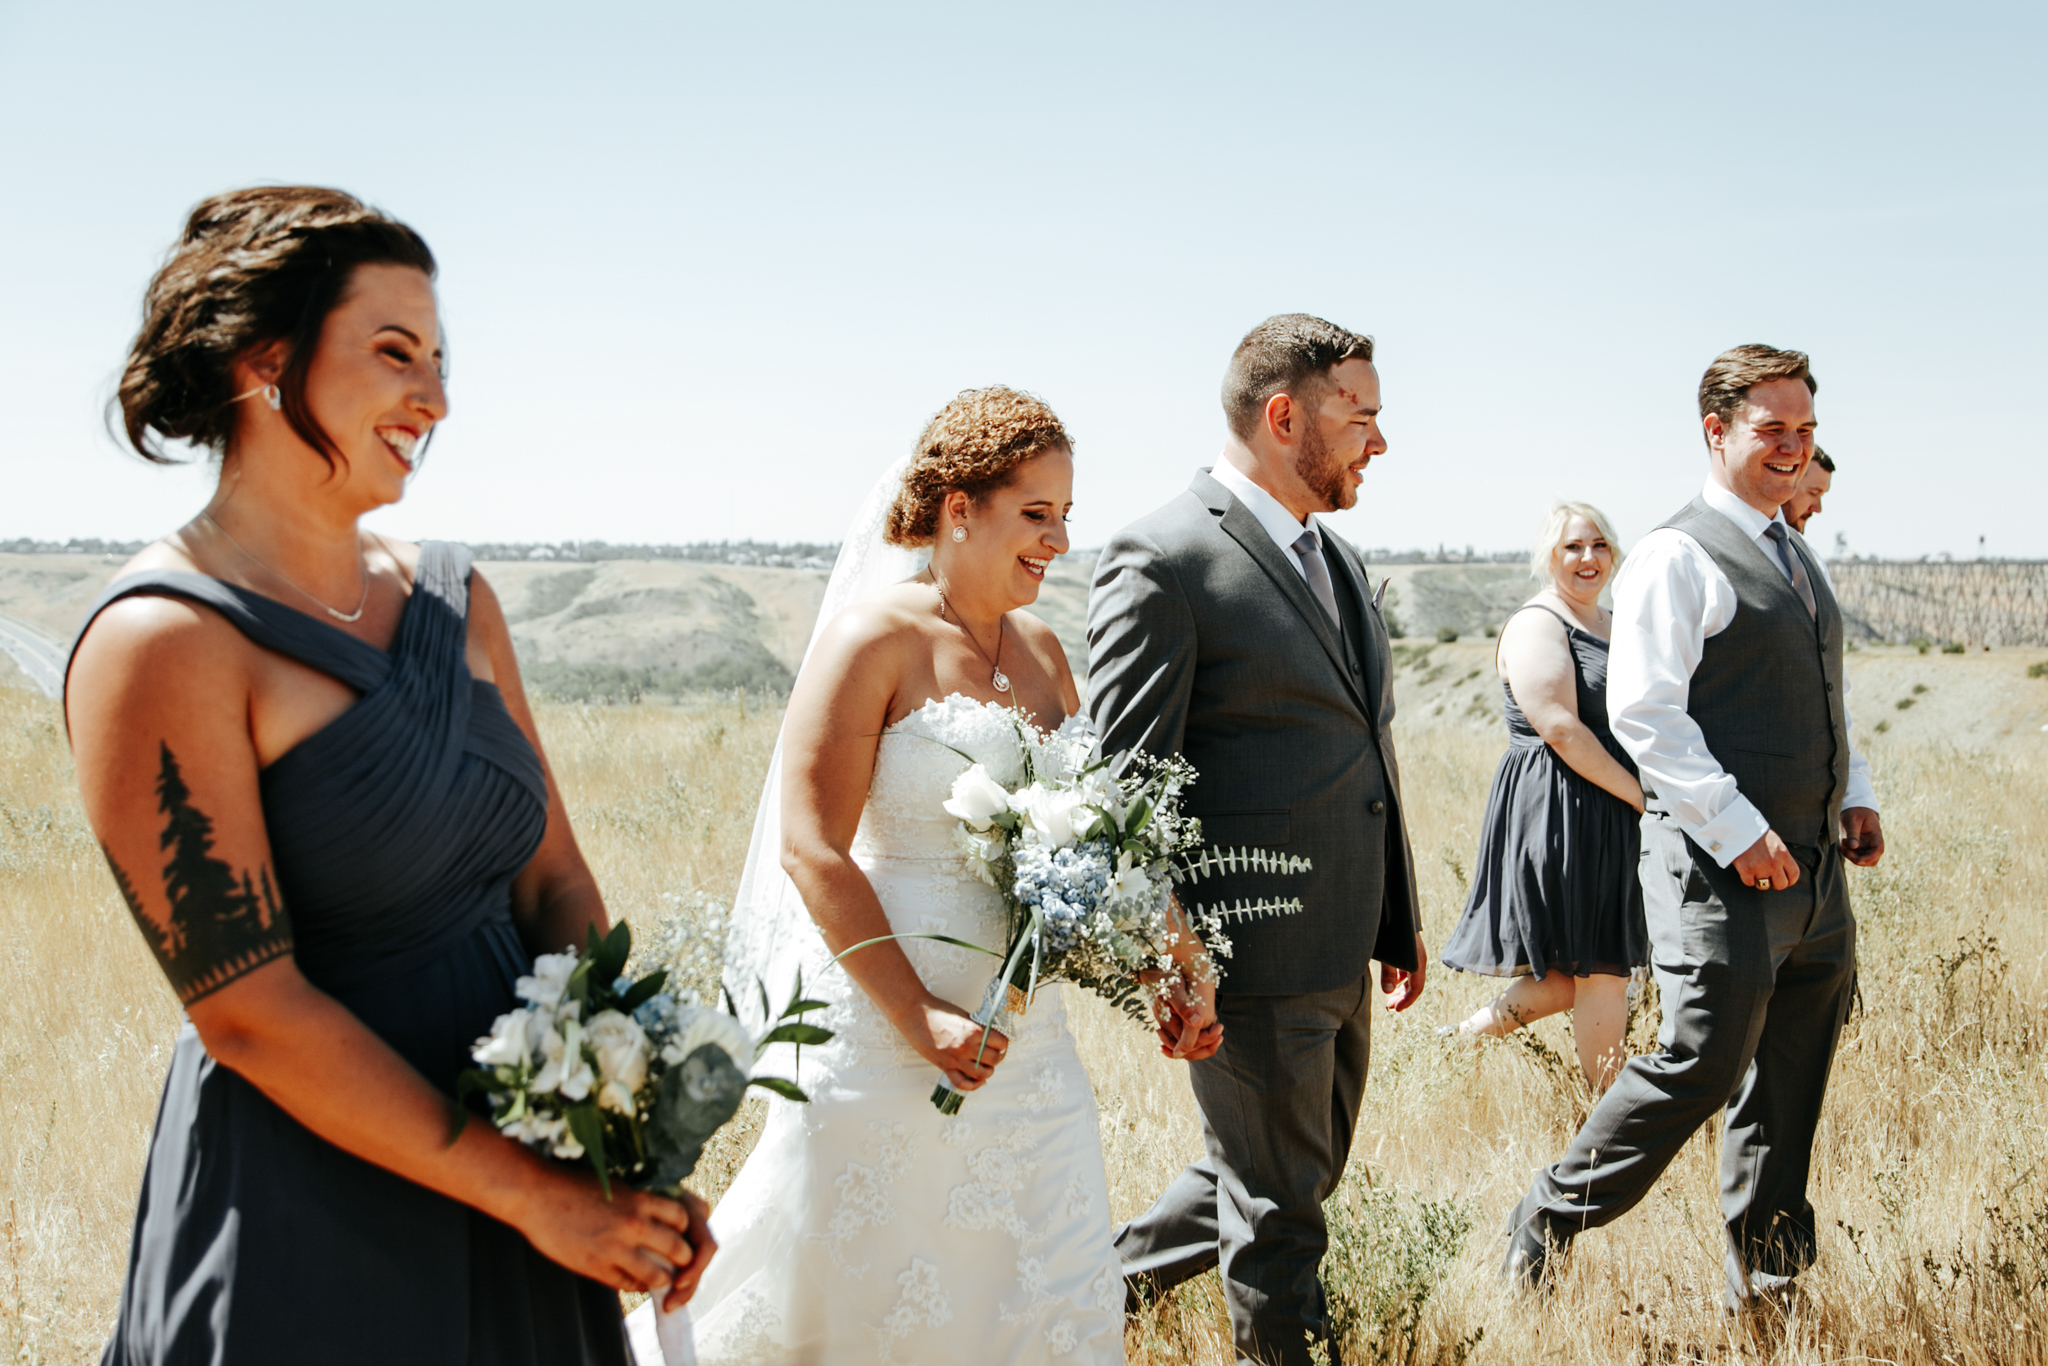 lethbridge-wedding-photographer-love-and-be-loved-photography-trent-danielle-galt-reception-picture-image-photo-89.jpg